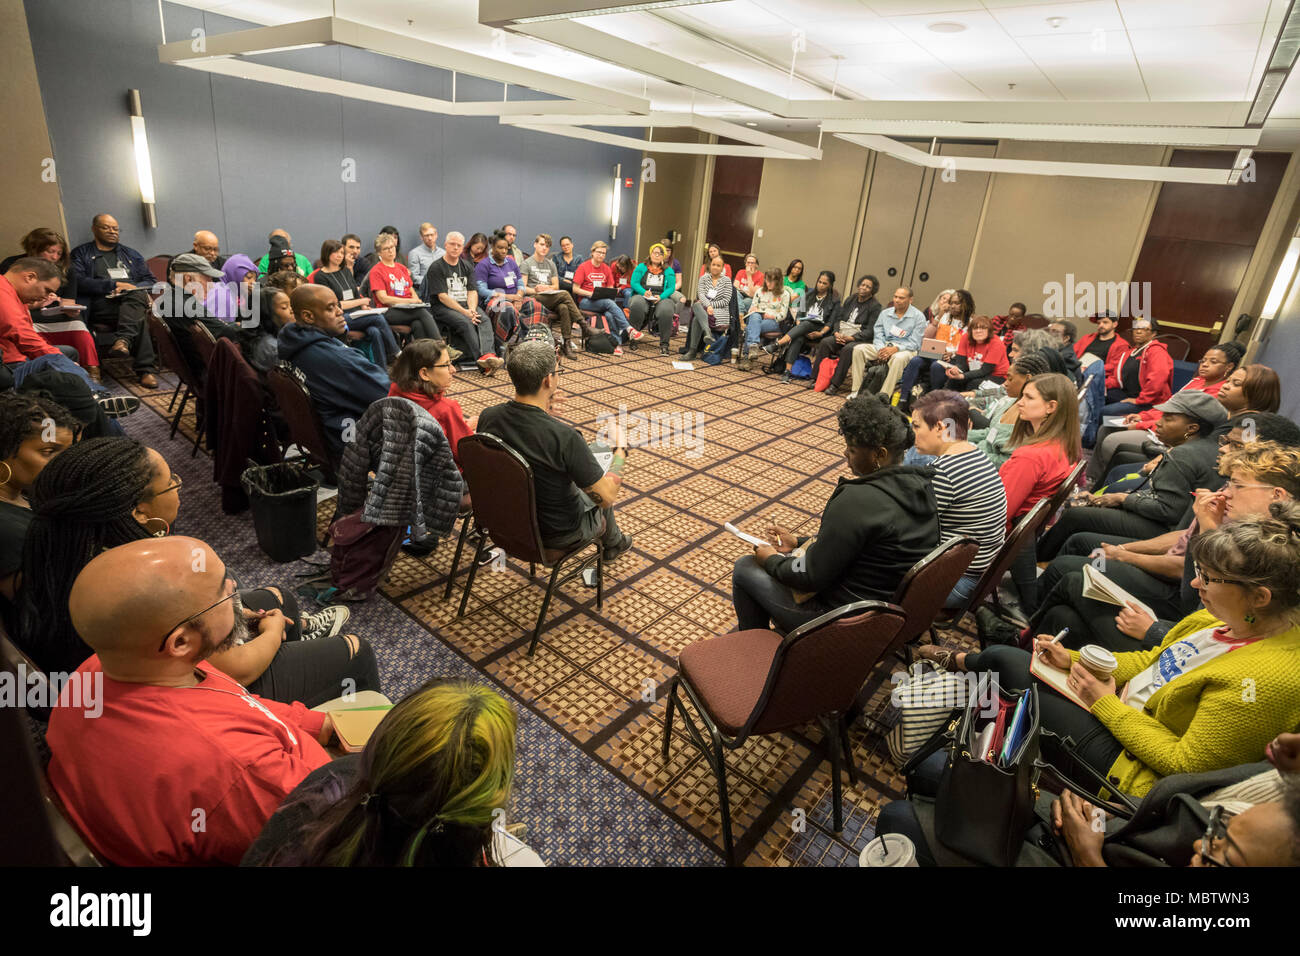 Chicago, Illinois - A workshop on Black Lives Matter in Schools at the biannual Labor Notes conference. Three thousand rank and file union activists from across the United States and beyond gathered at the conference to discuss how to revitalize the labor movement. - Stock Image